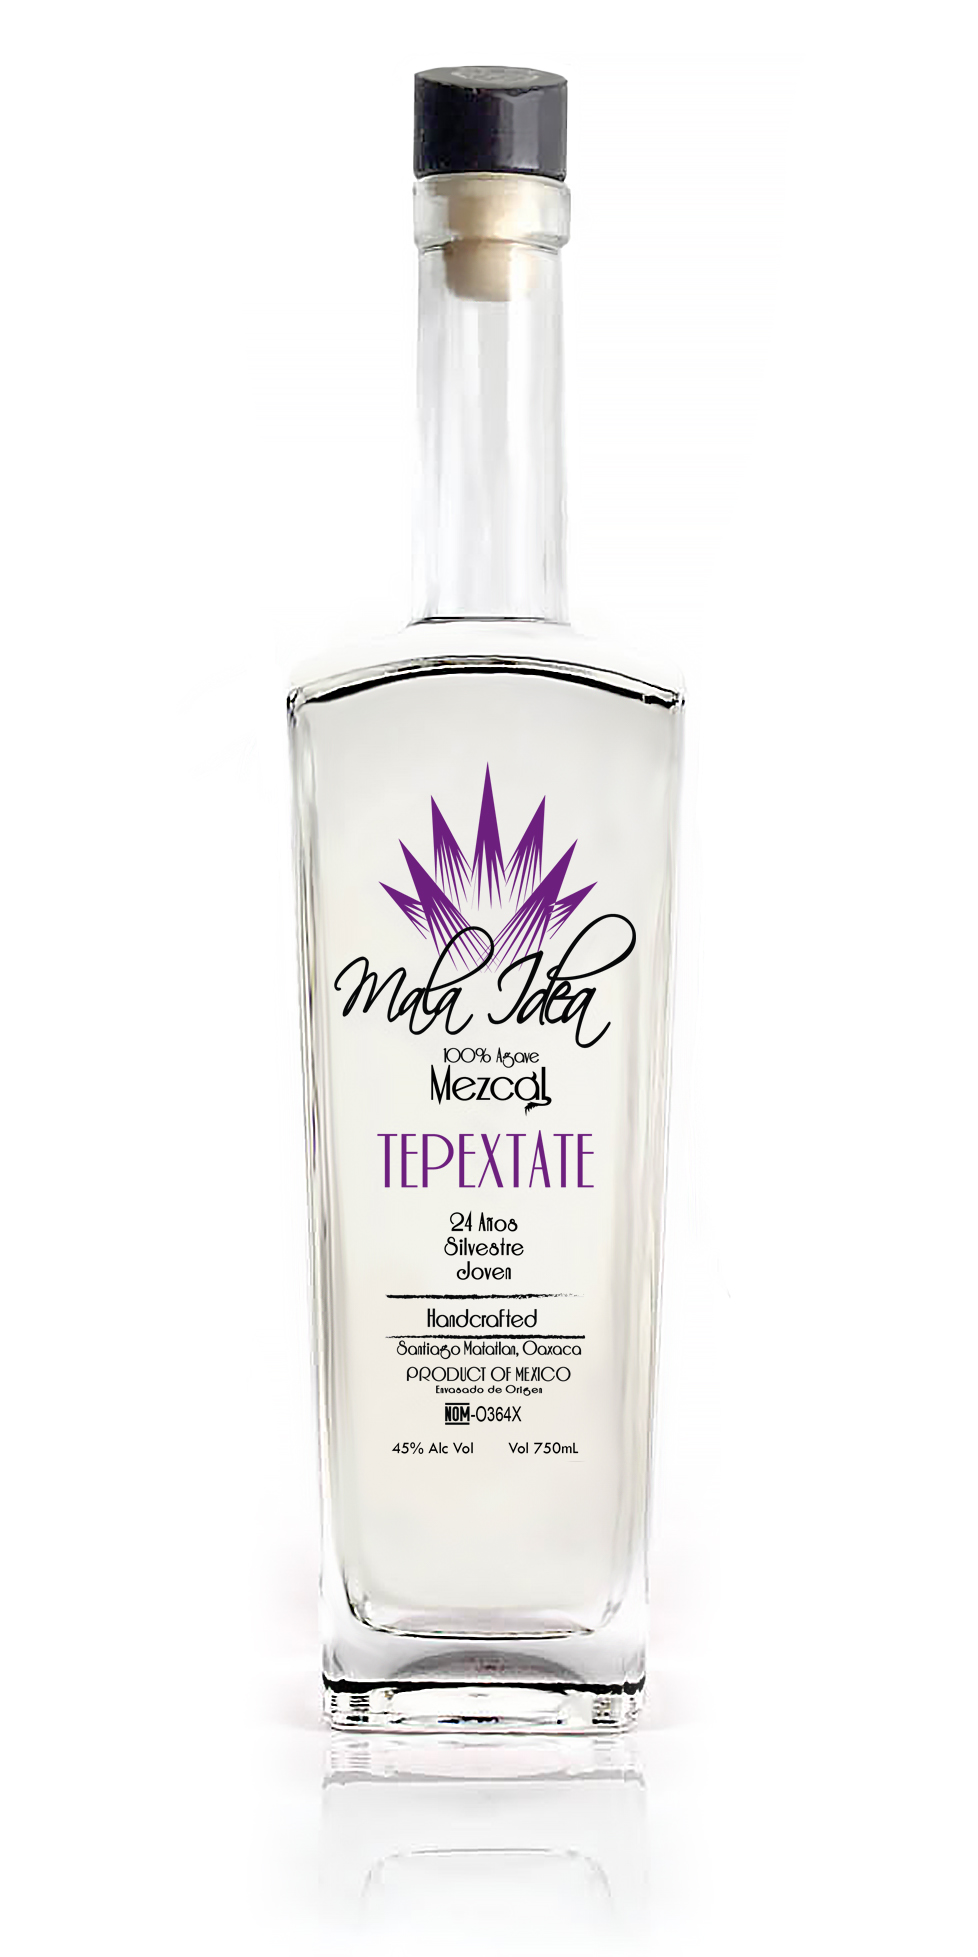 Mezcal Mala Idea Tepextate 24 Years